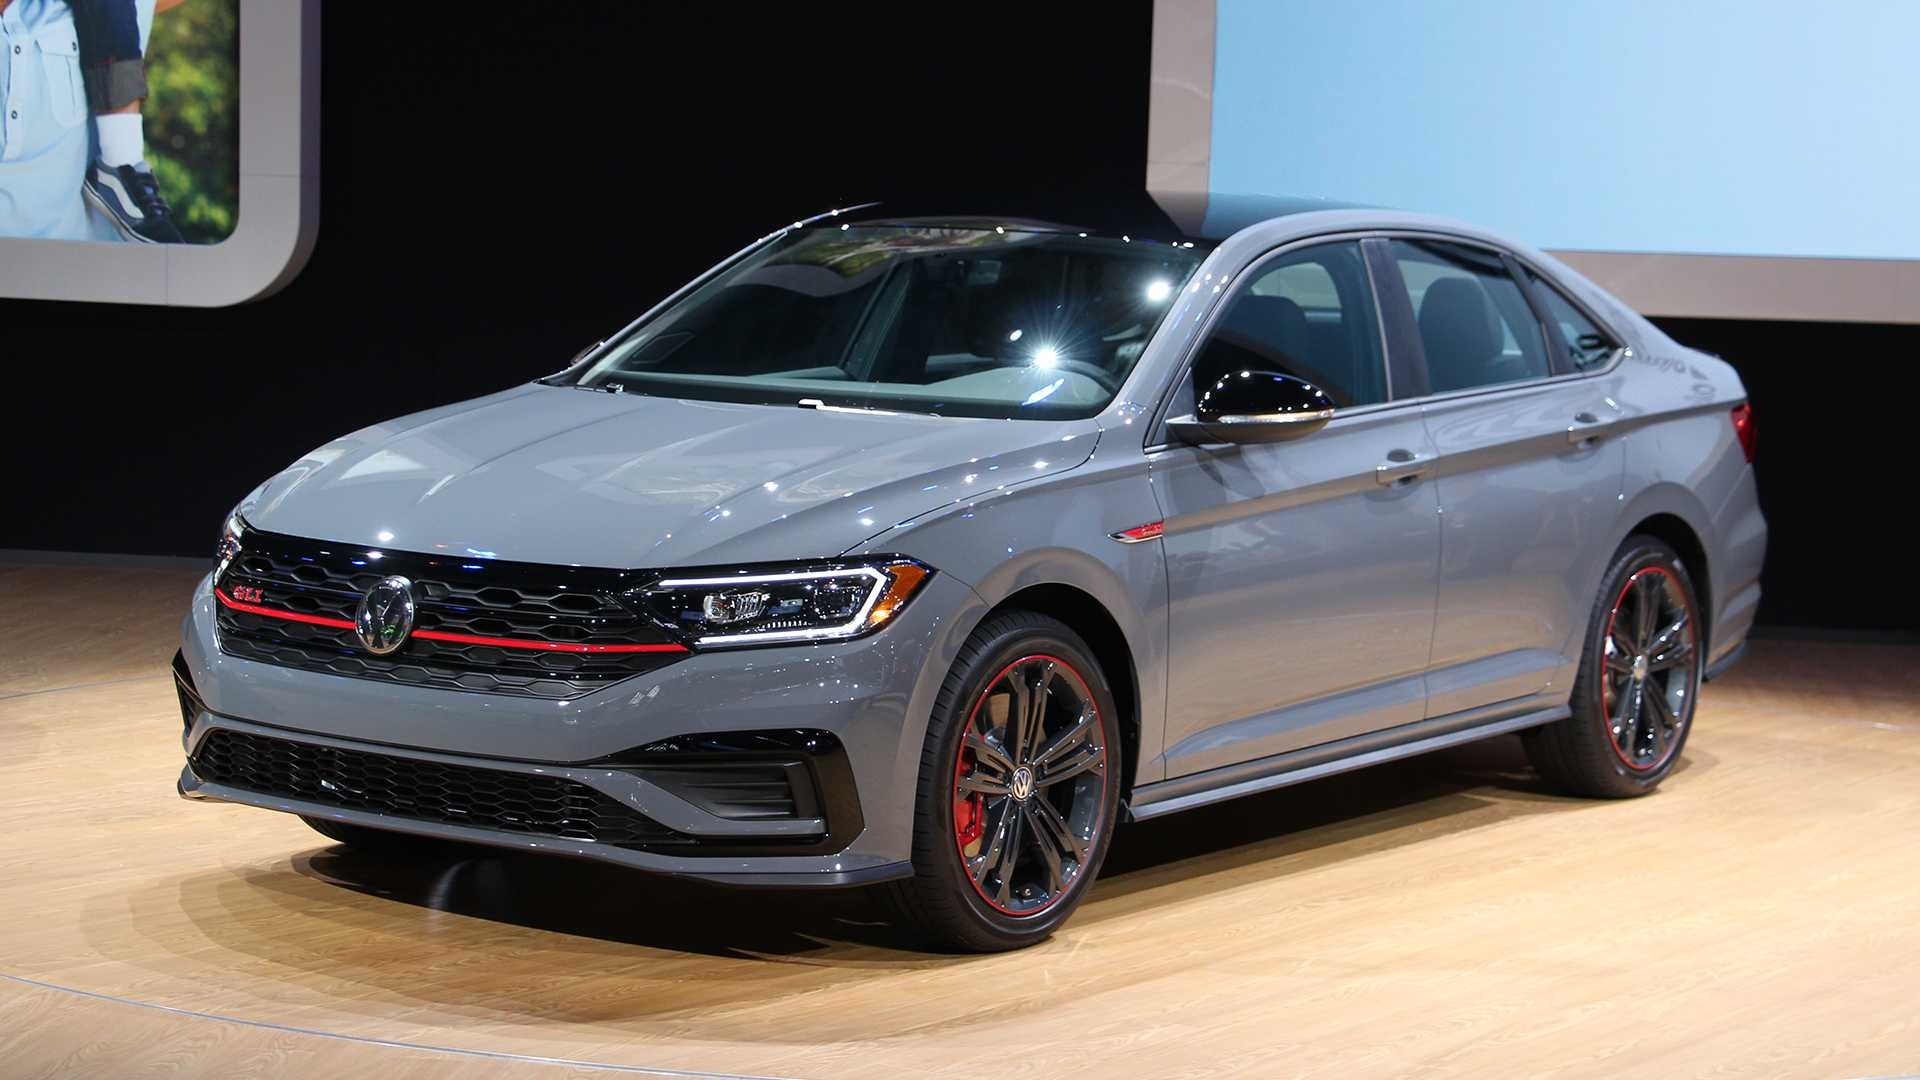 85 Best Volkswagen Jetta 2020 Price New Concept